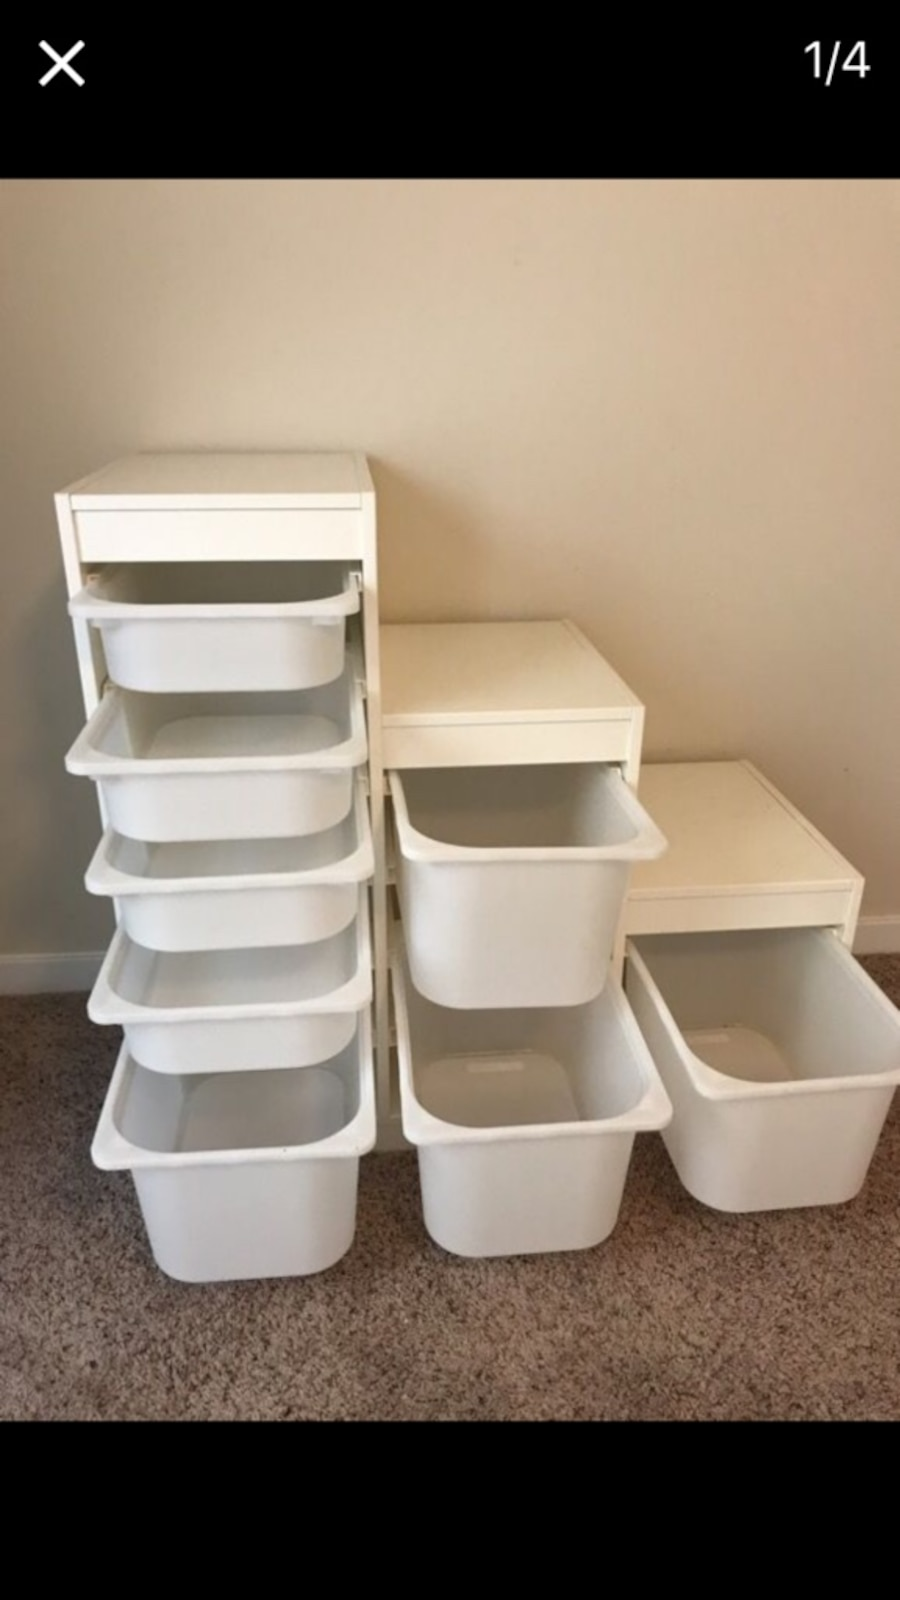 Children's cupboard with 8 movable boxess - United States